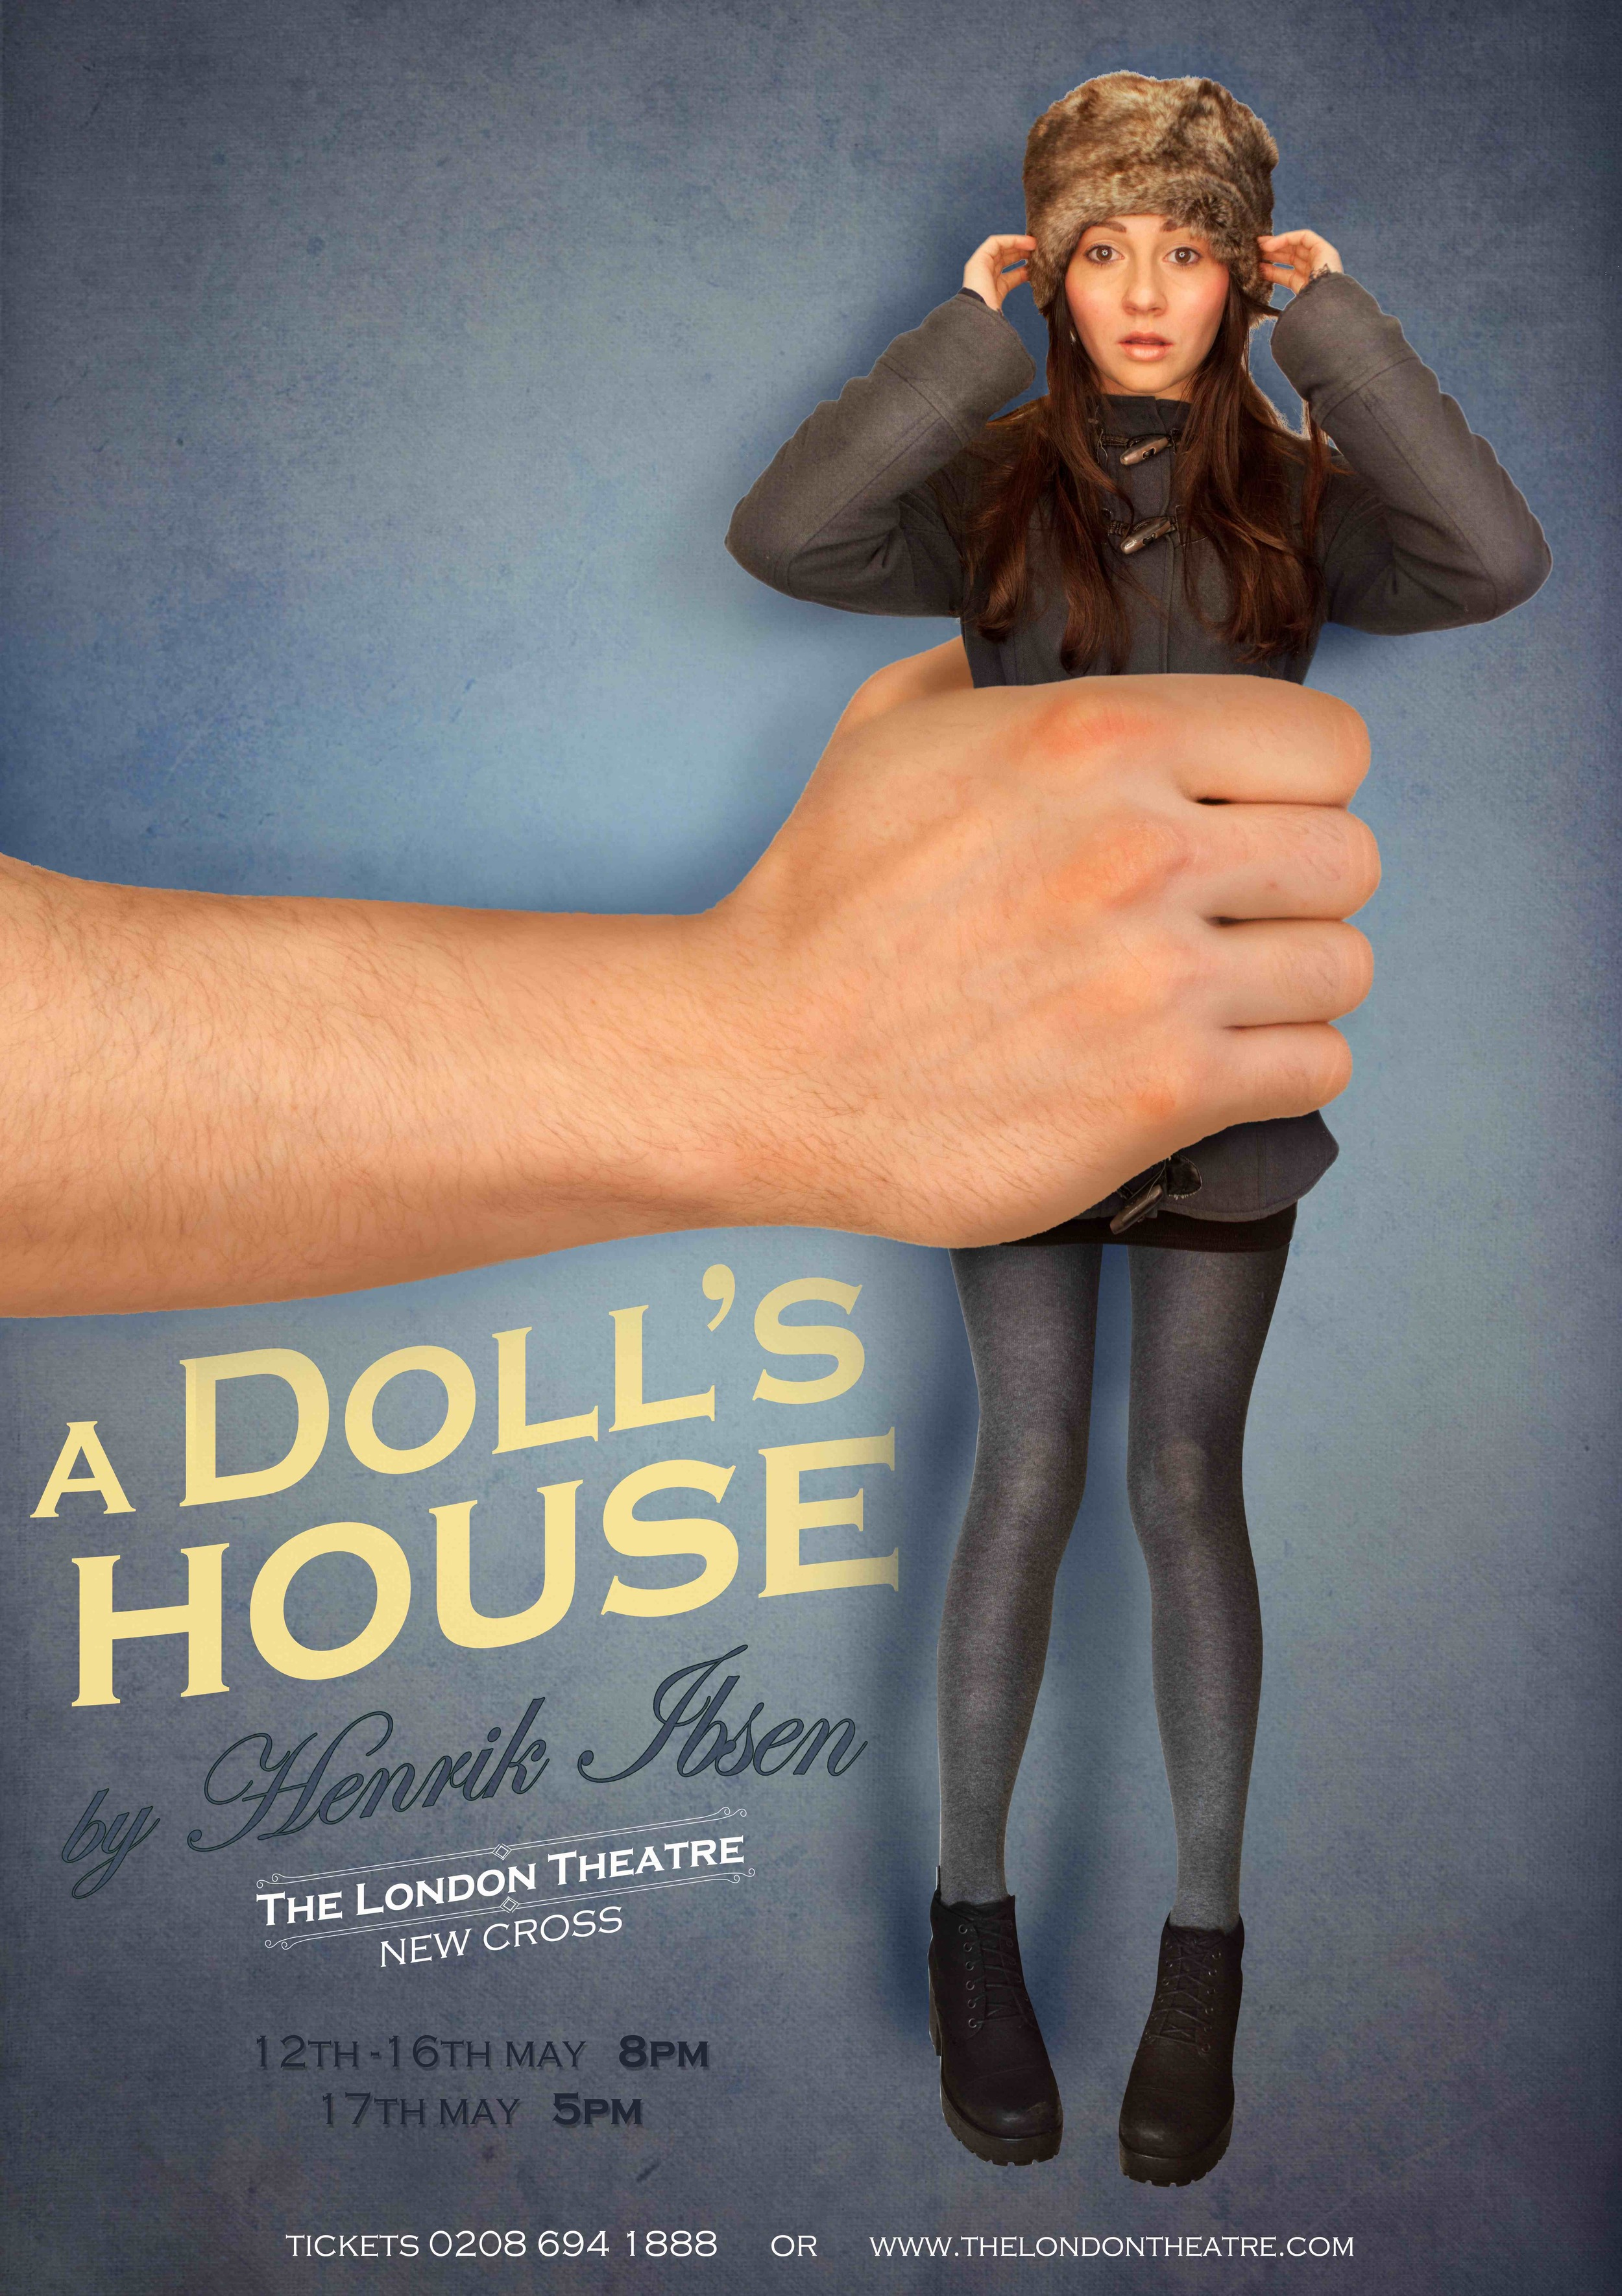 A DOLL's HOUSE - attachment size.jpg